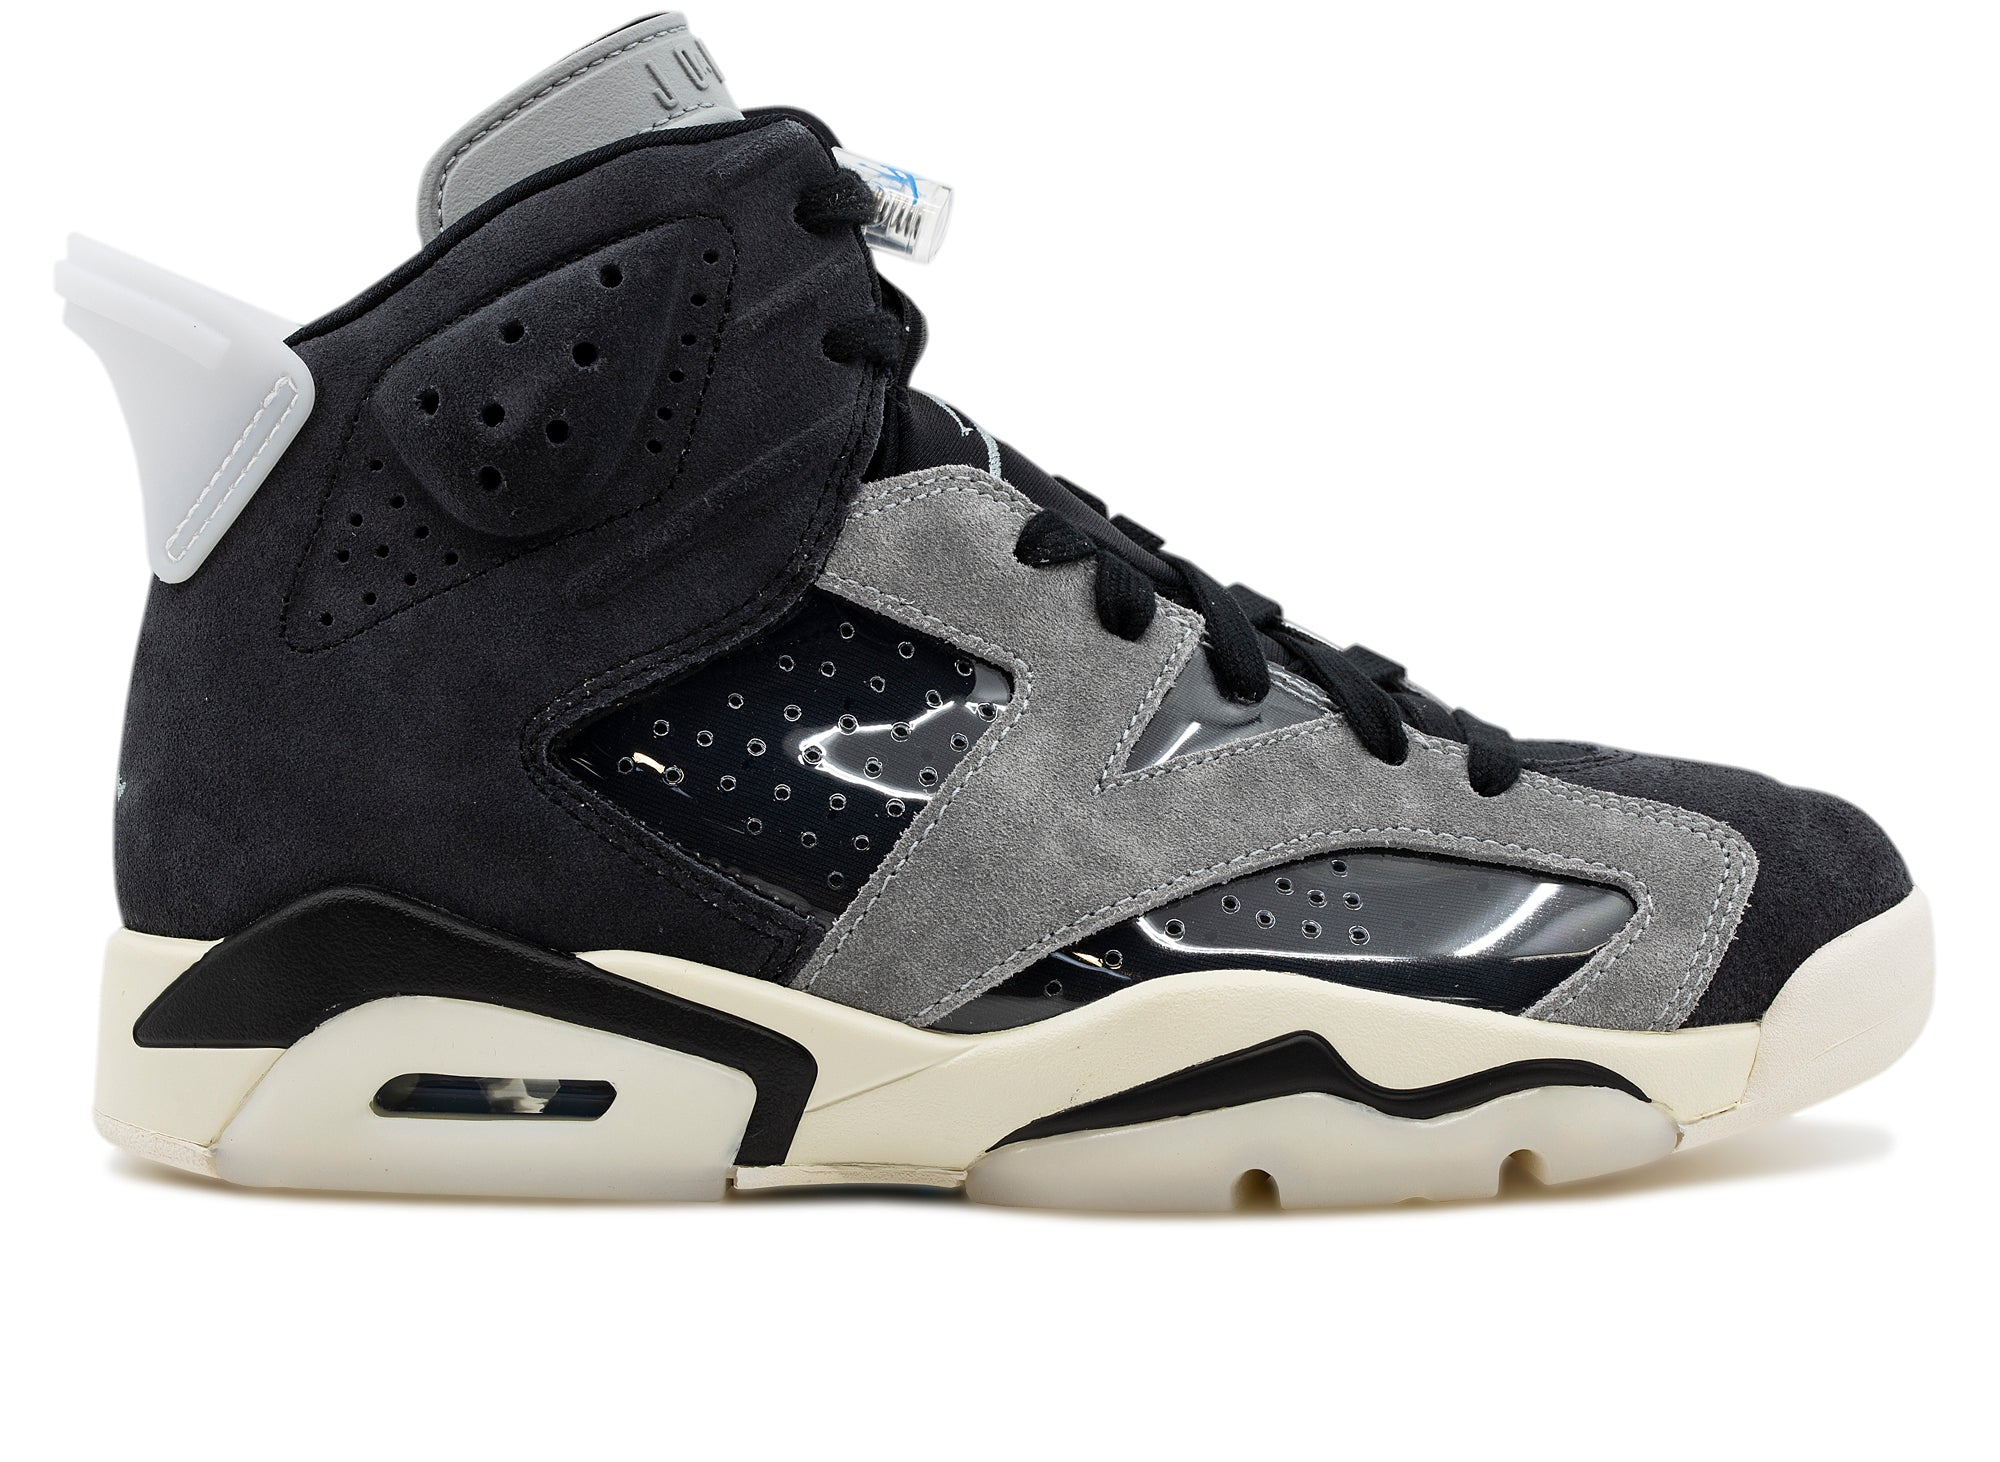 Women's Air Jordan 6 Retro 'Smoke Grey' xld